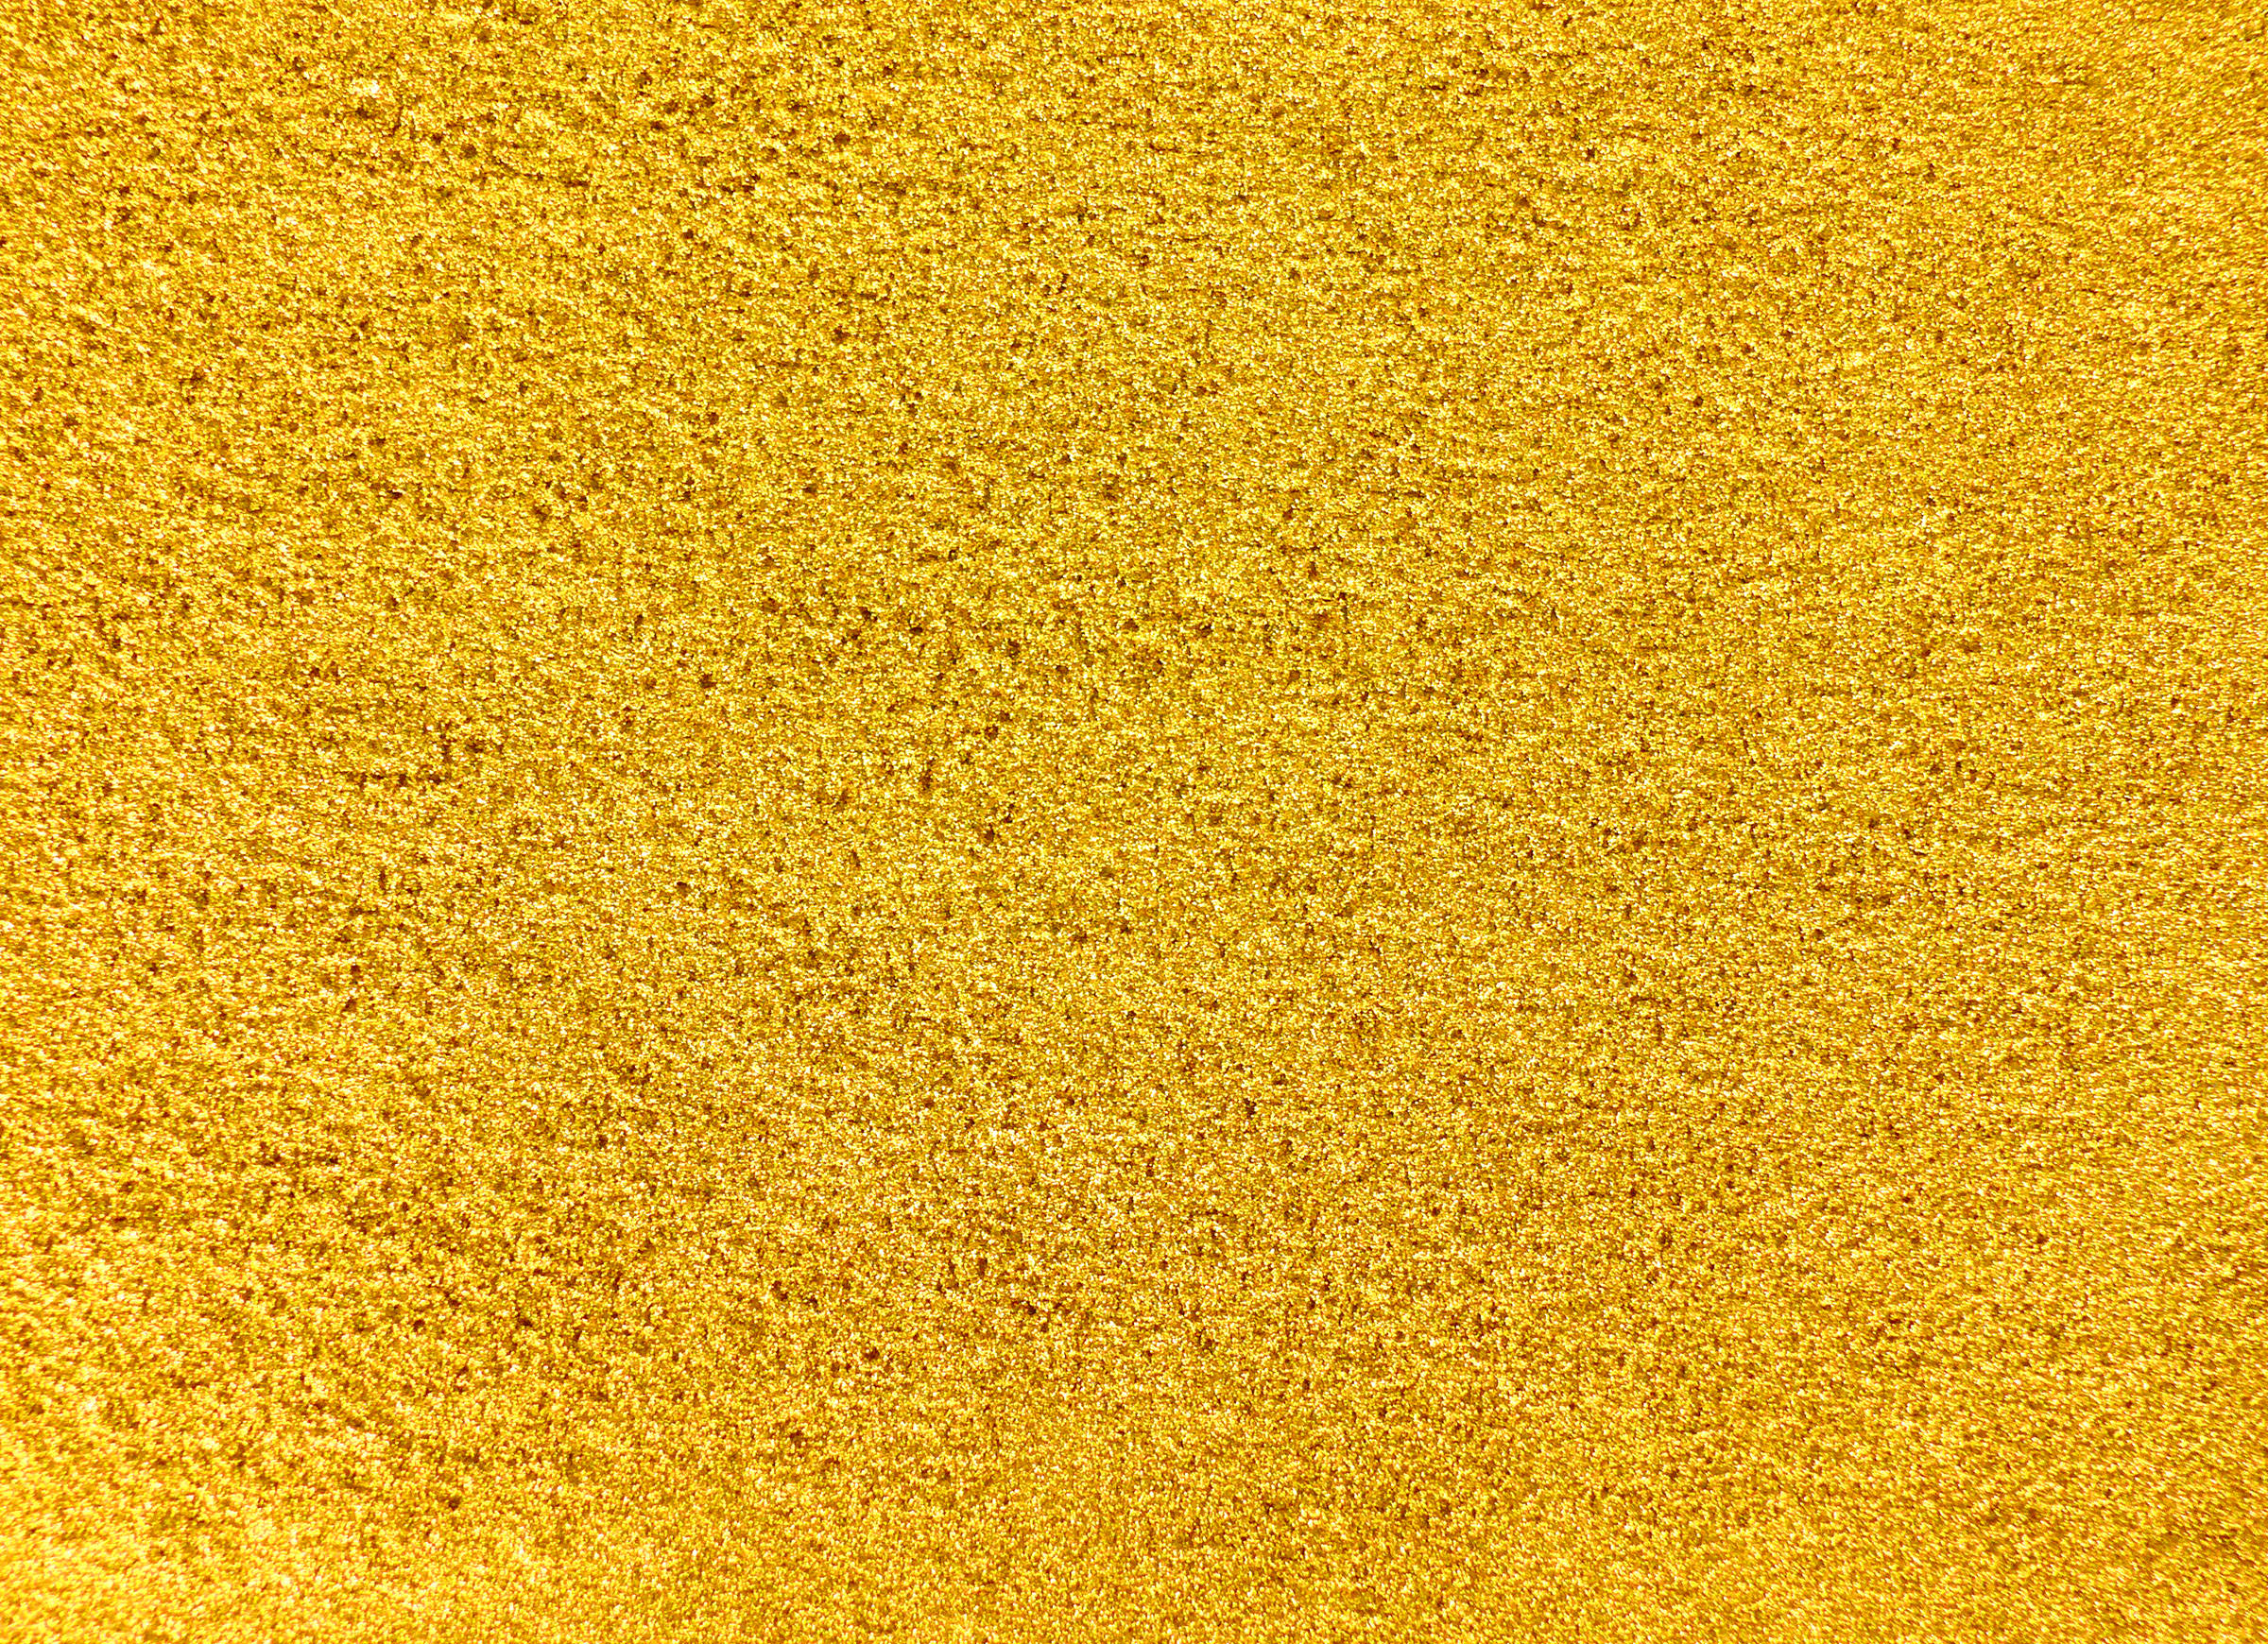 High Res Yellow and Gold Glitter Background